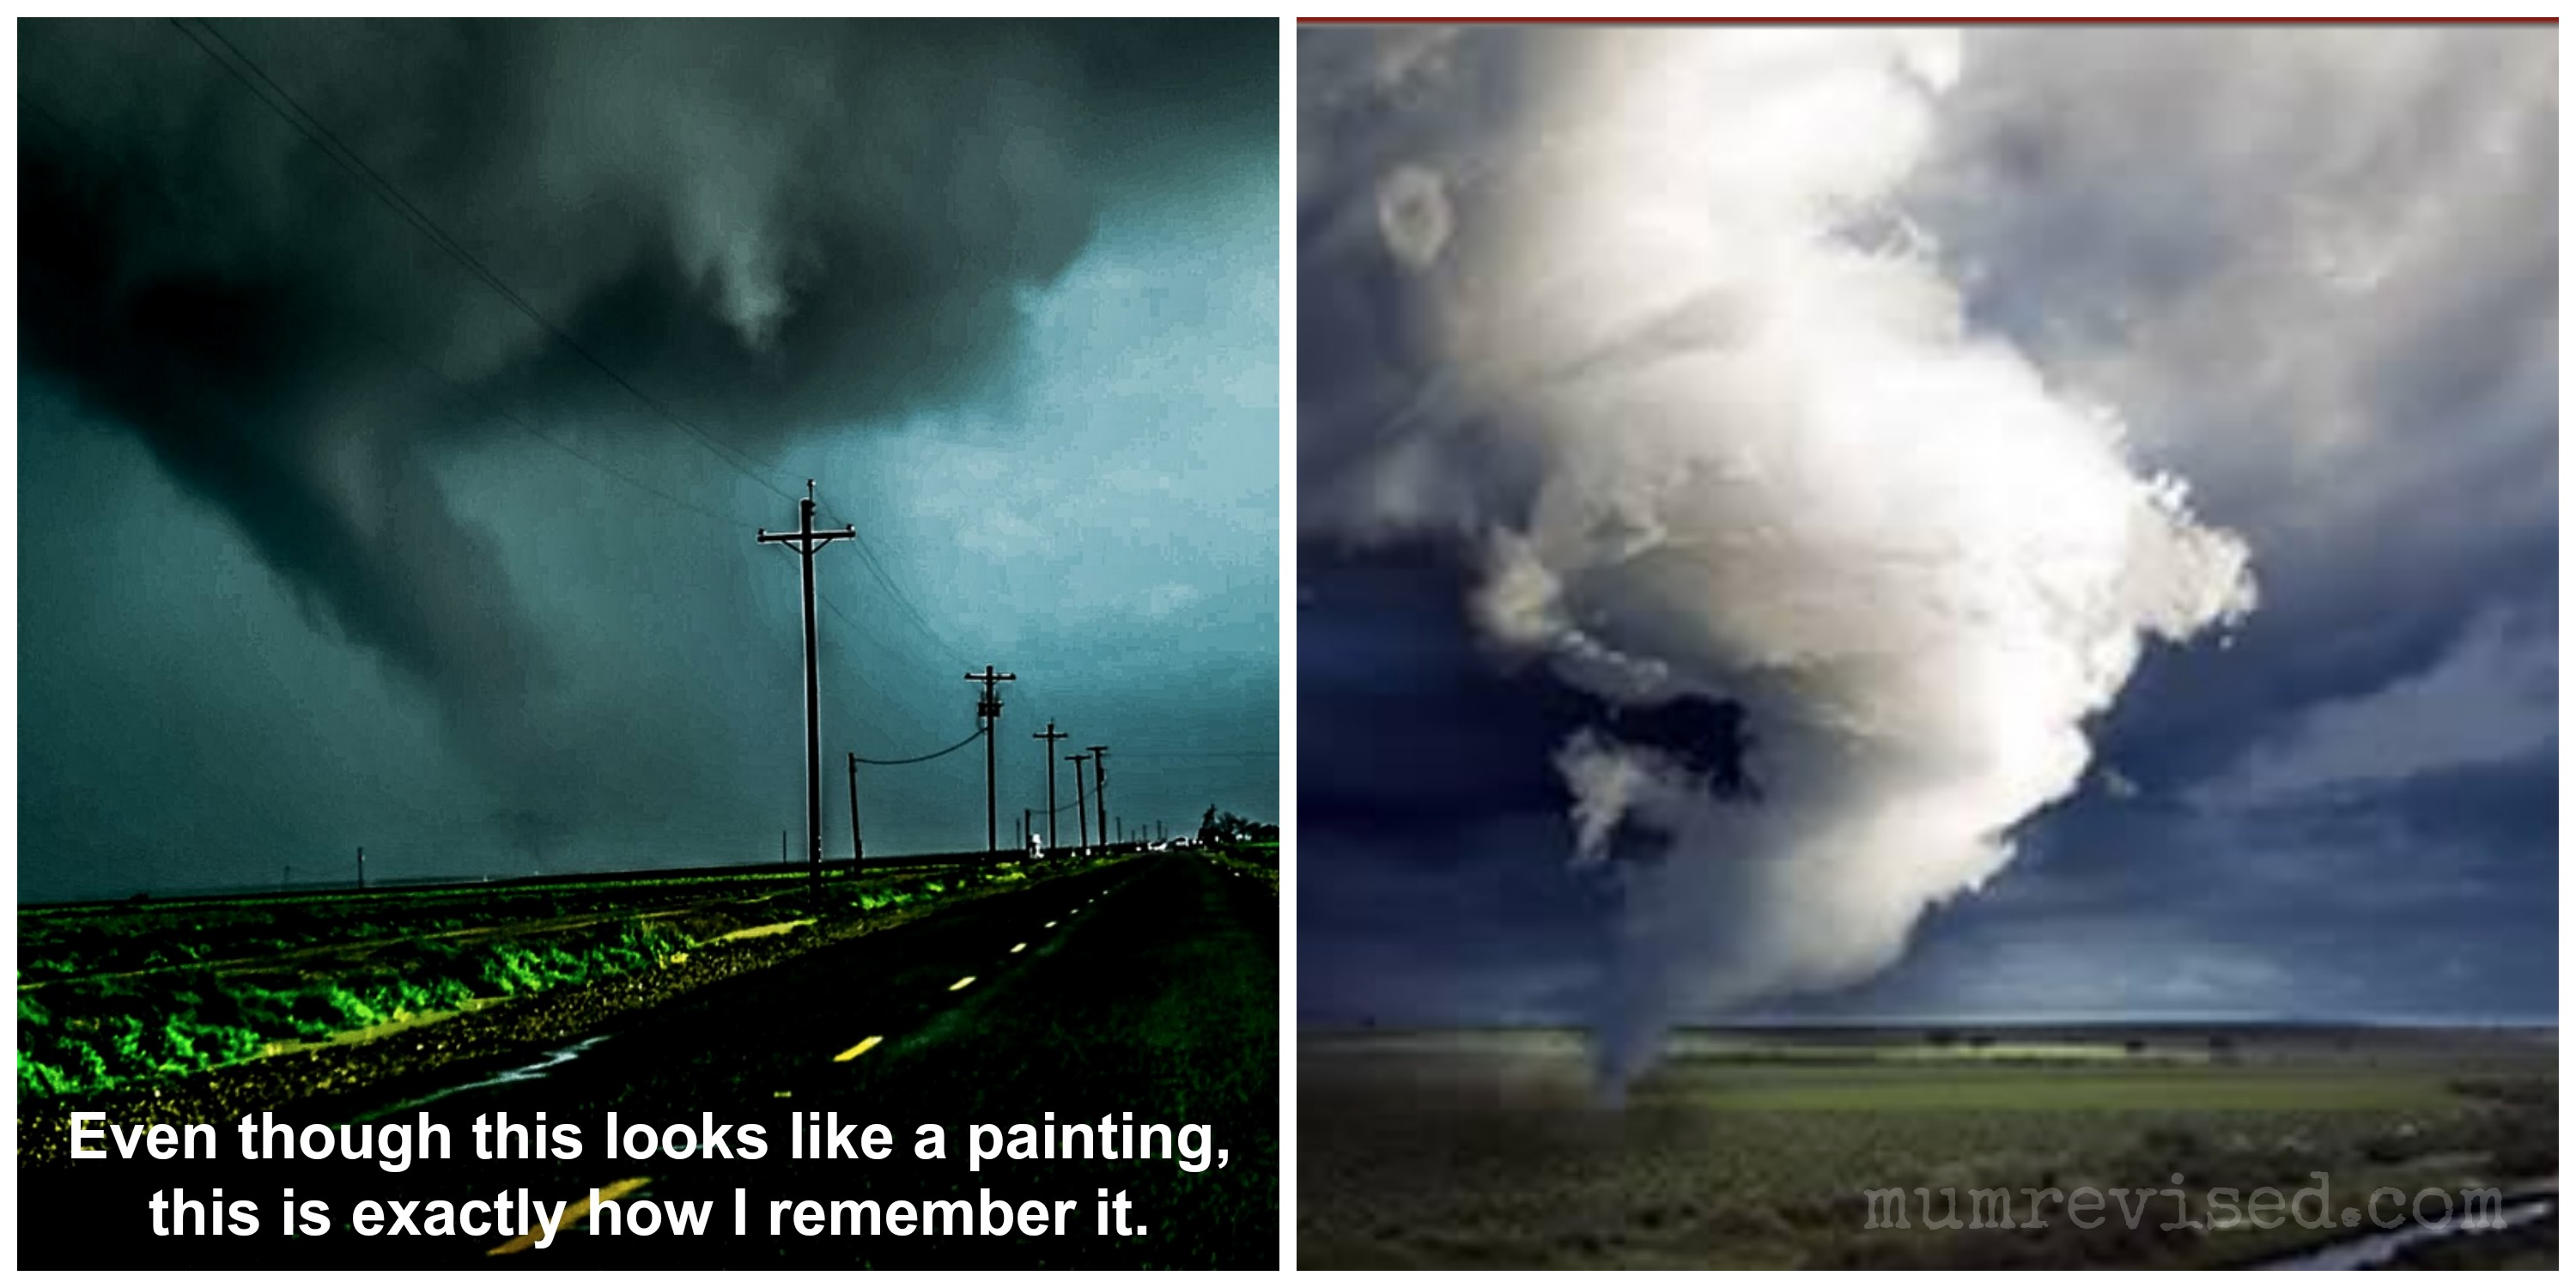 The Dead Series: That Time I Almost Kissed a Twister